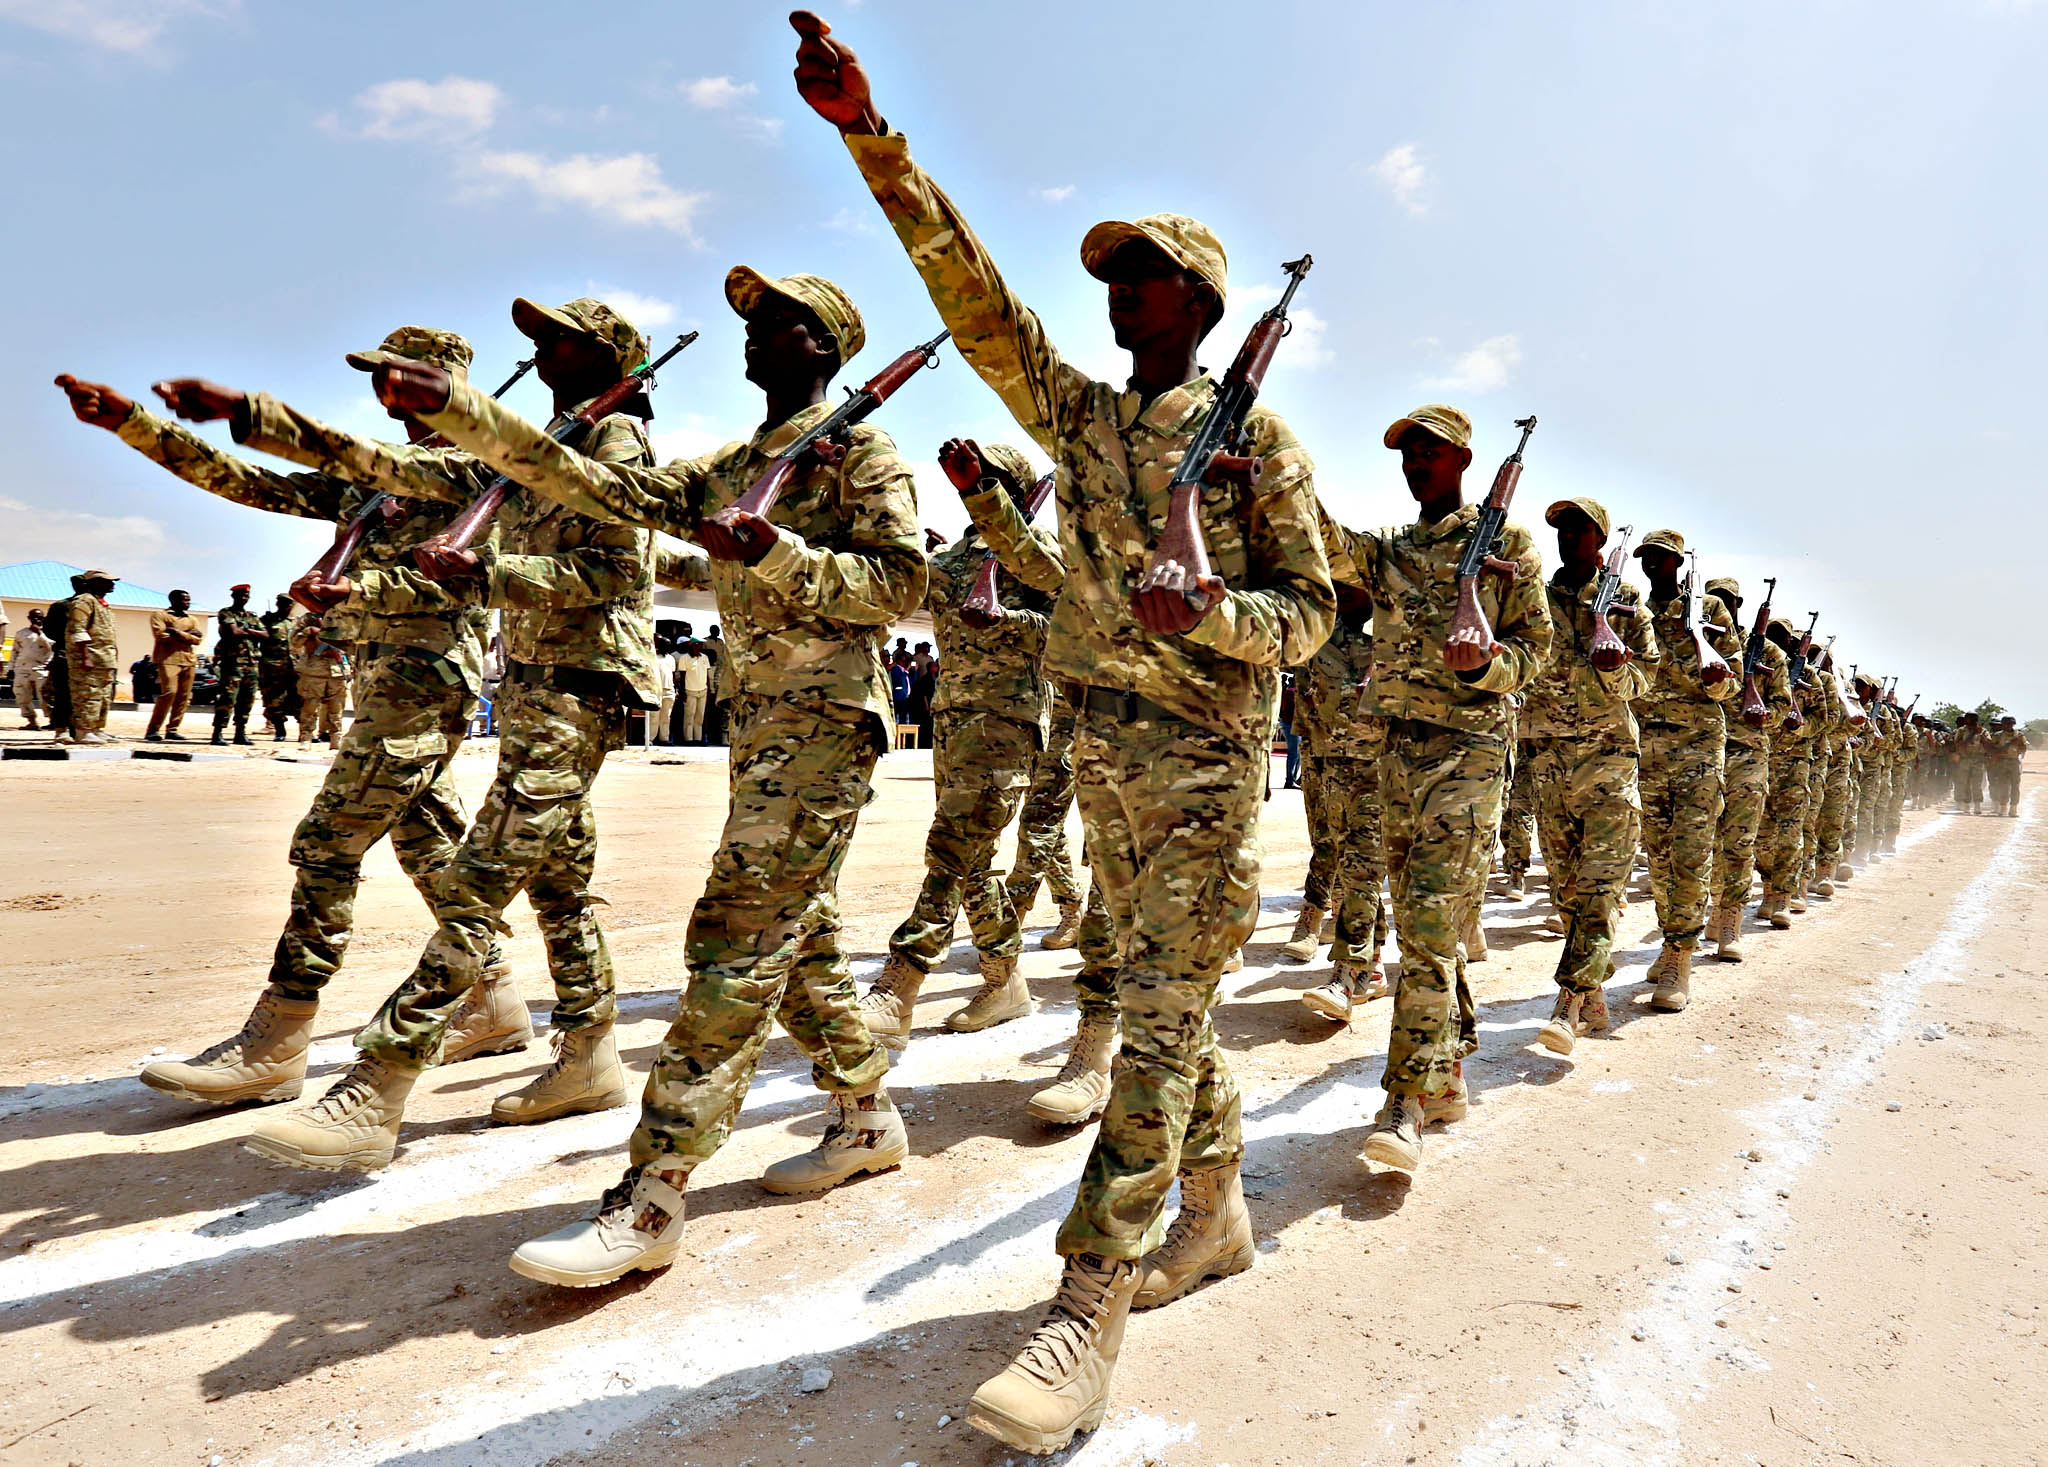 Members of the Somali military parade after attending a commando training exercise at the United Arab Emirates military training camp in Mogadishu...Members of the Somali military parade after attending a commando training exercise at the United Arab Emirates military training camp in the capital Mogadishu, Somalia January 20, 2016.